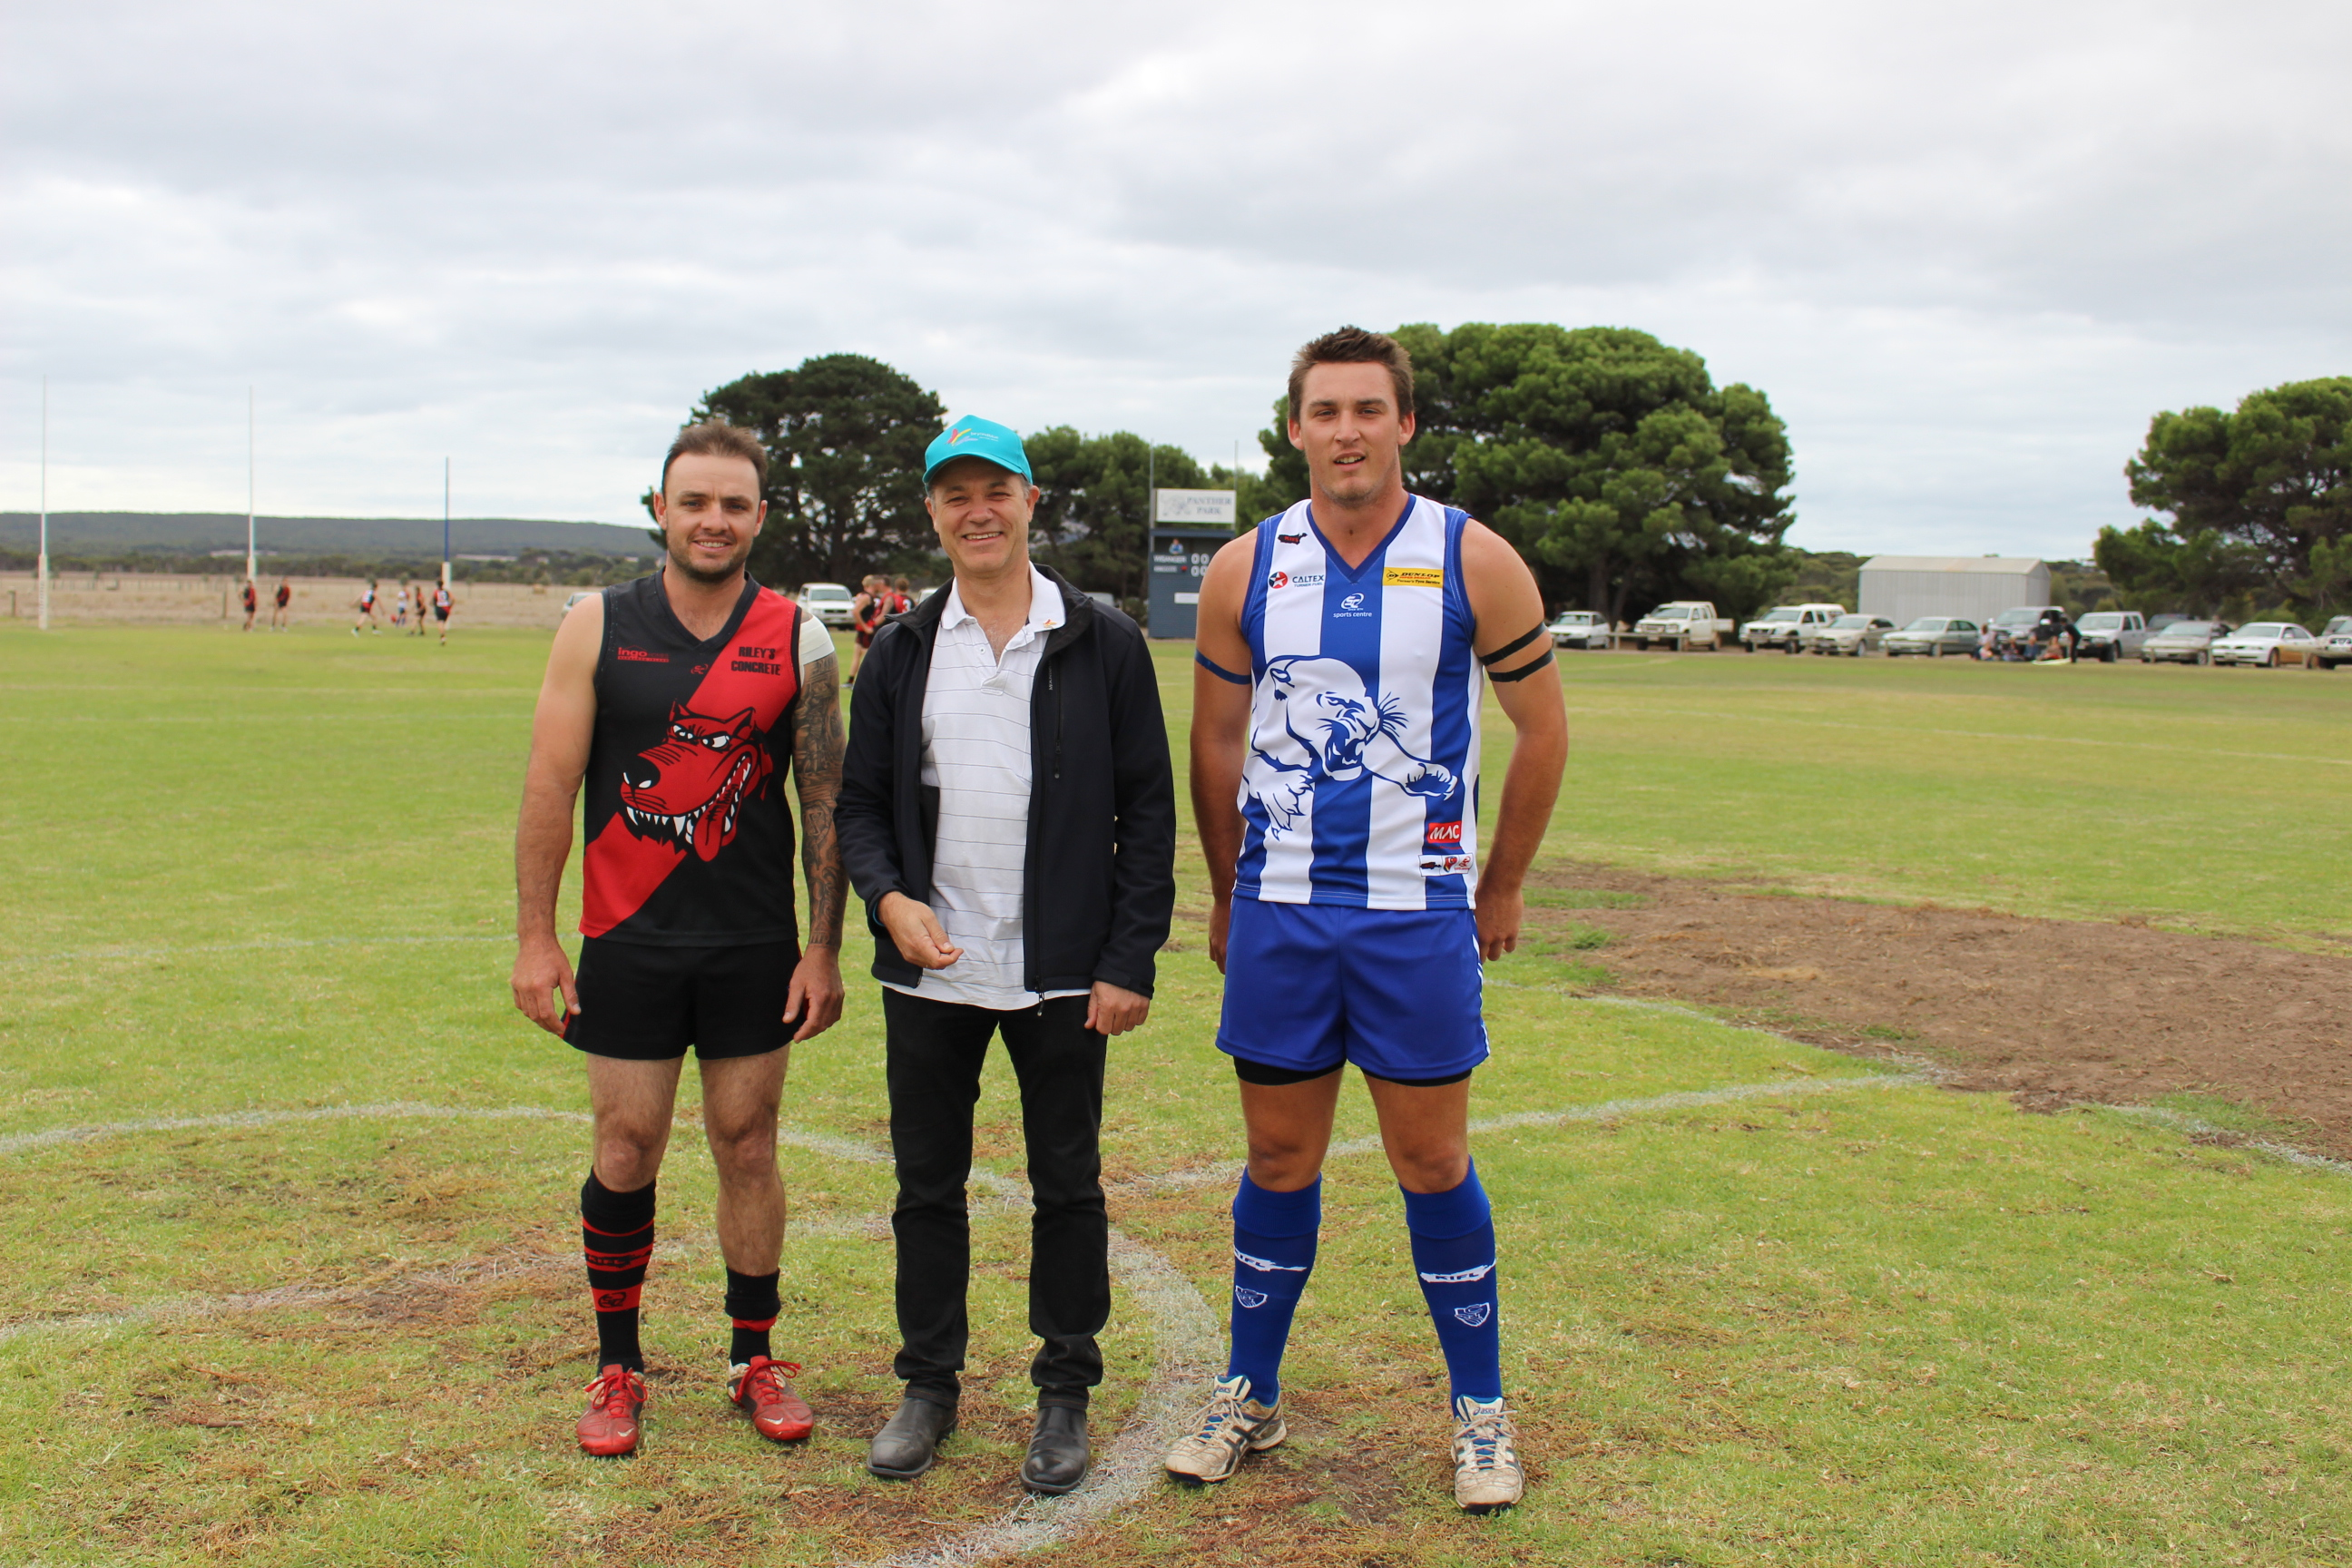 Beyond Blue Board Director Associate Professor Michael Baigent with Kingscote and Wisanger captains.